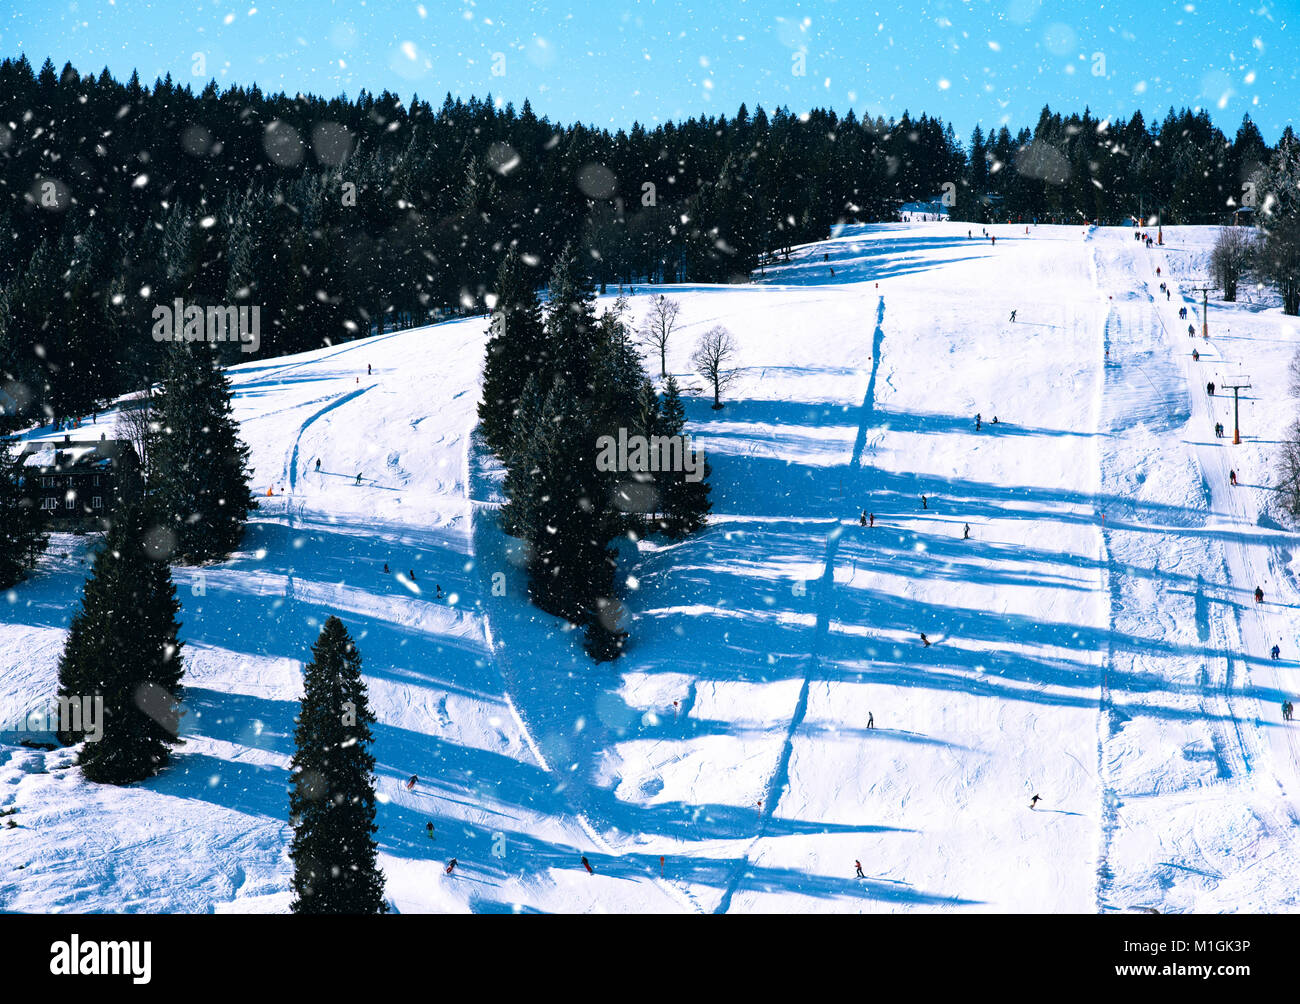 Piste ski tracks on snowy and sunny mountain side - Stock Image